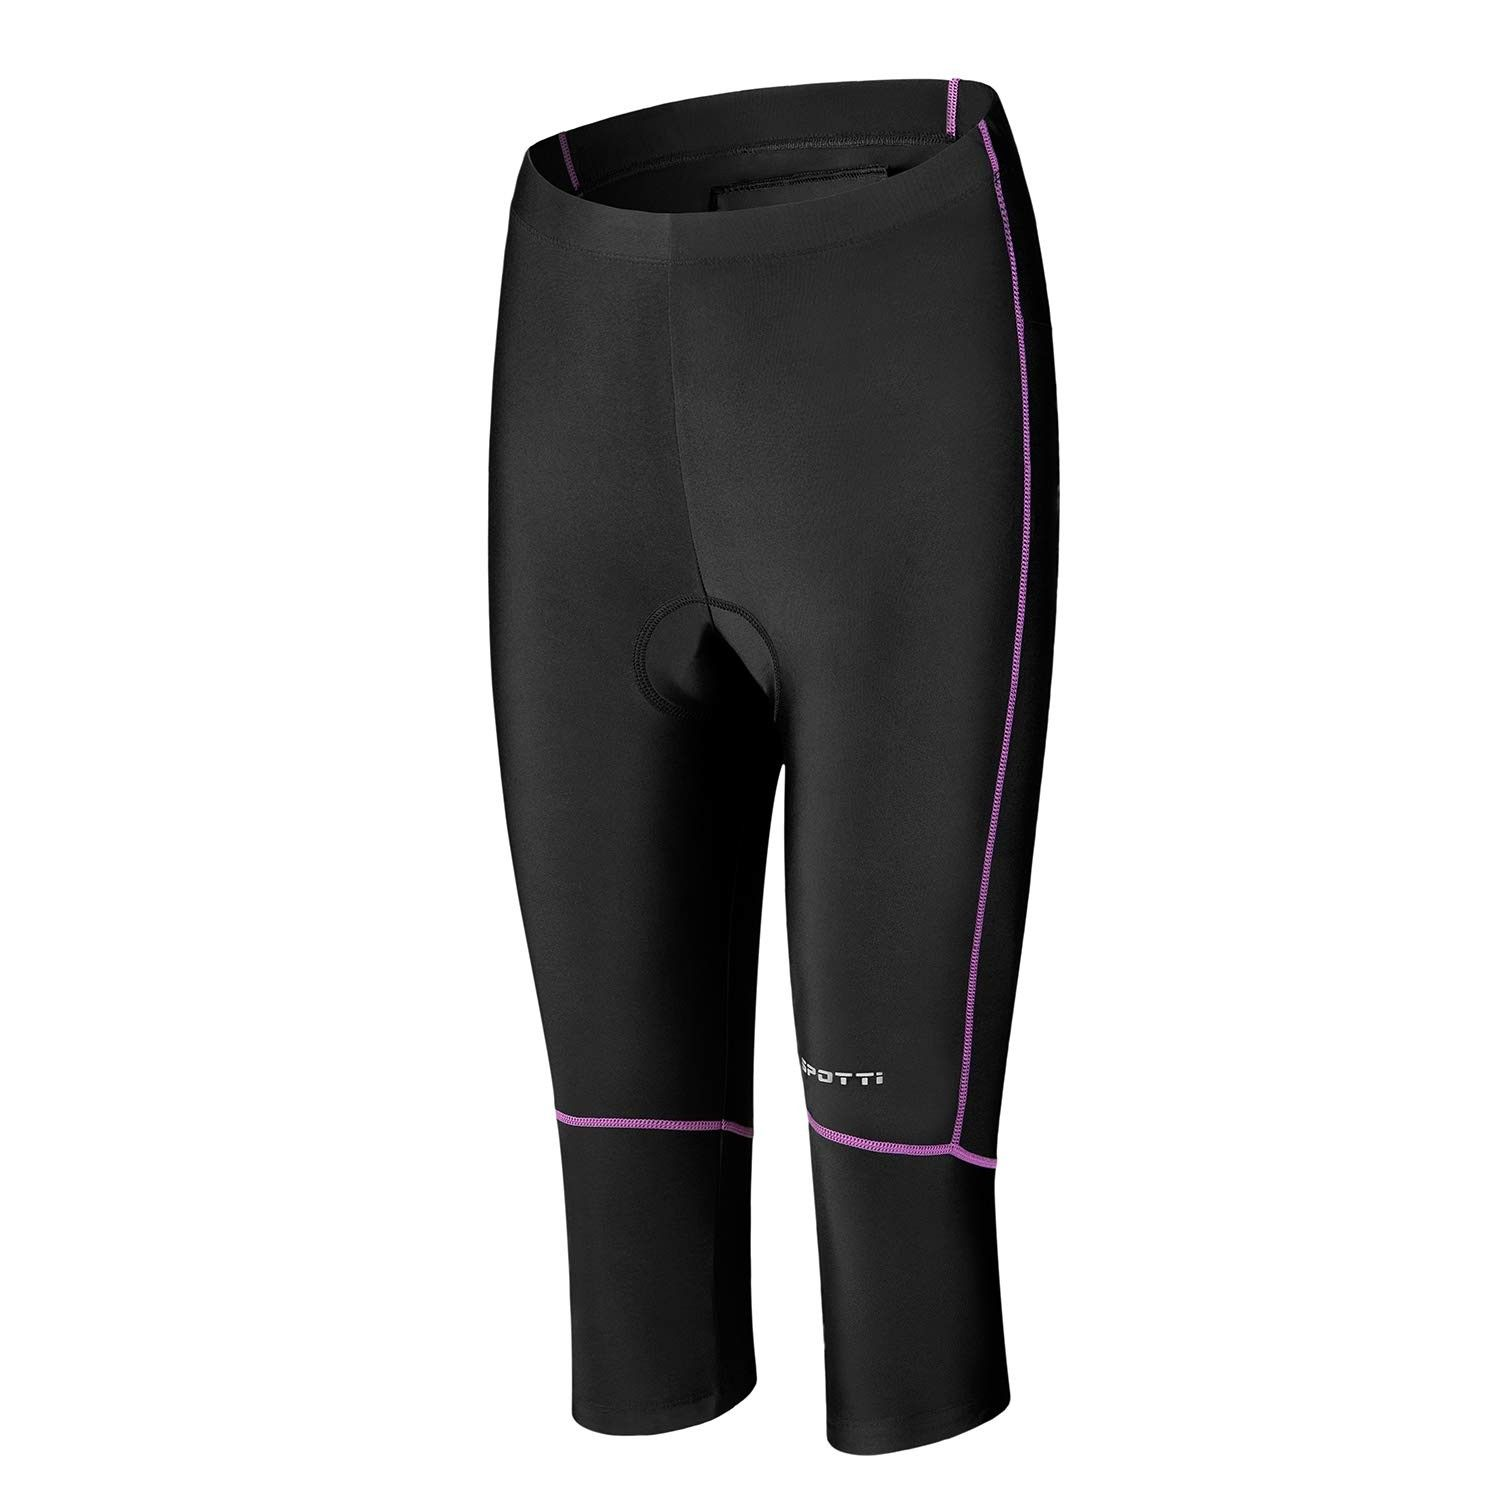 Womens Bike Shorts with Pocket - 3D Padded 3/4 Cycling Biking Pants Tights for Mountain Riding - Pur...